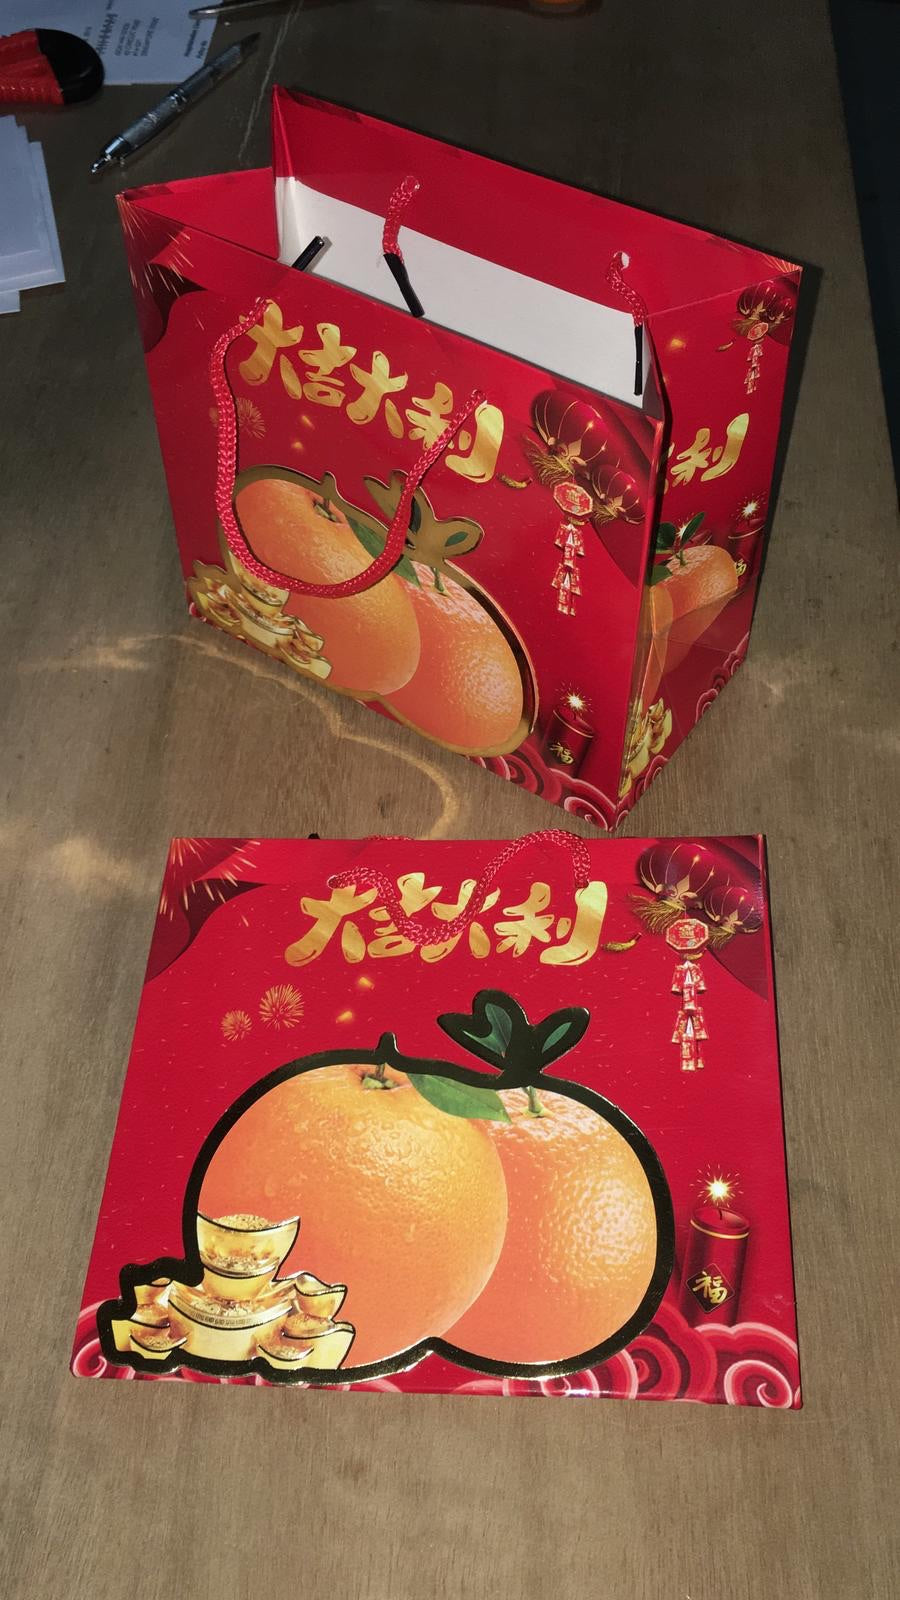 Mandarin orange bag (just the bag)